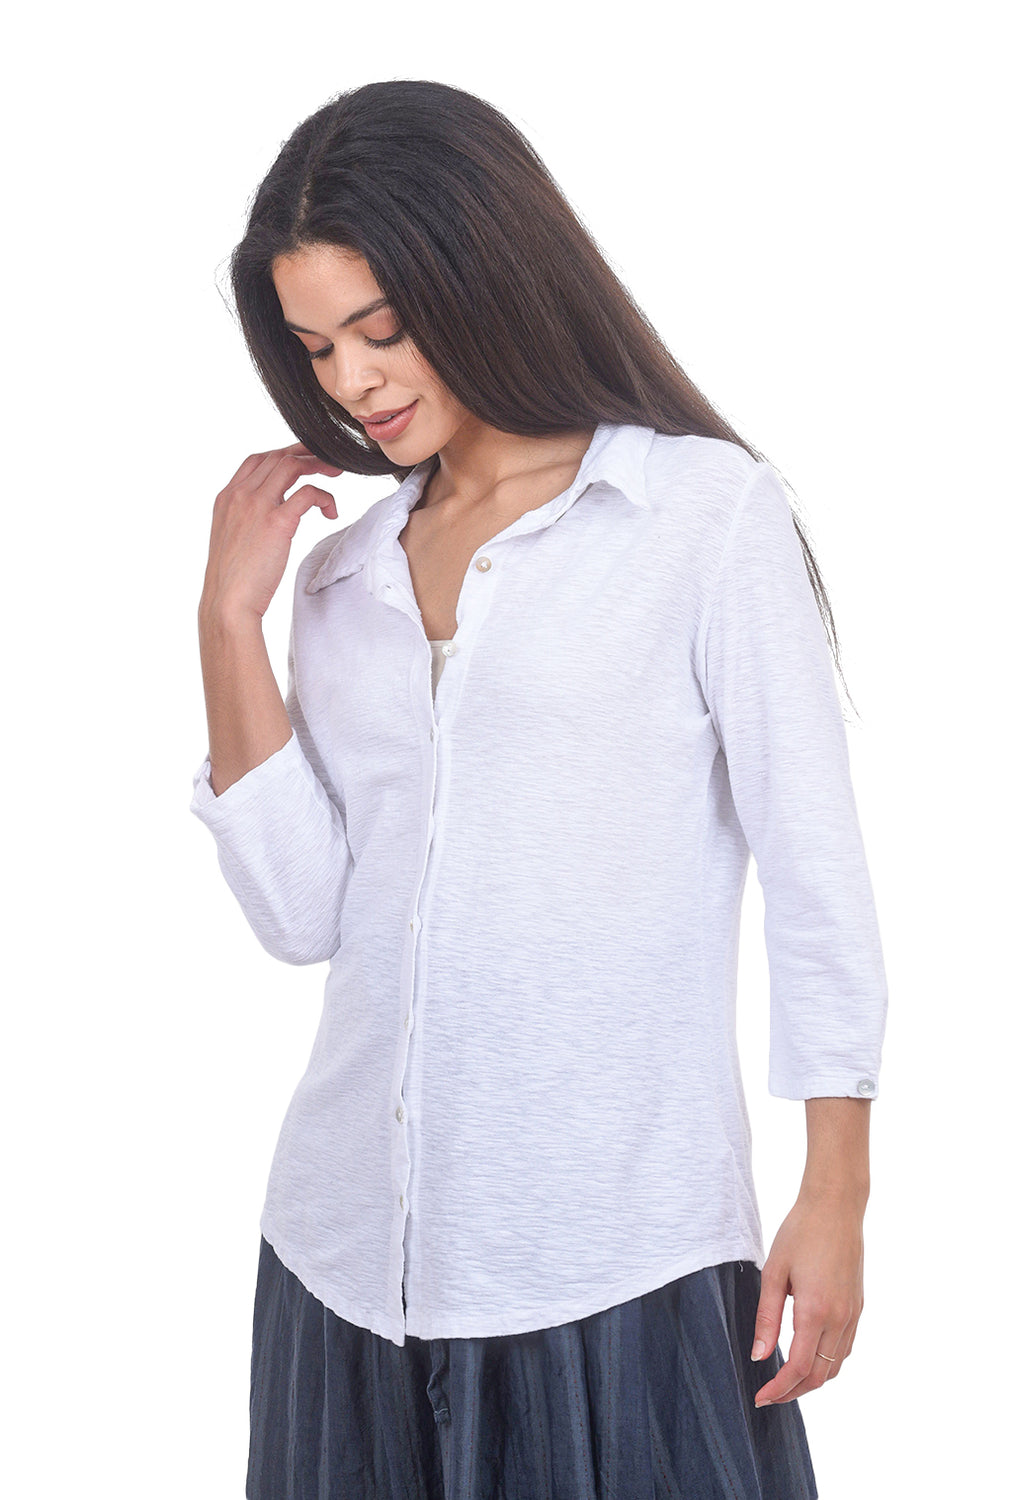 Cut Loose LJ 3/4-Sleeve Button Tee, White